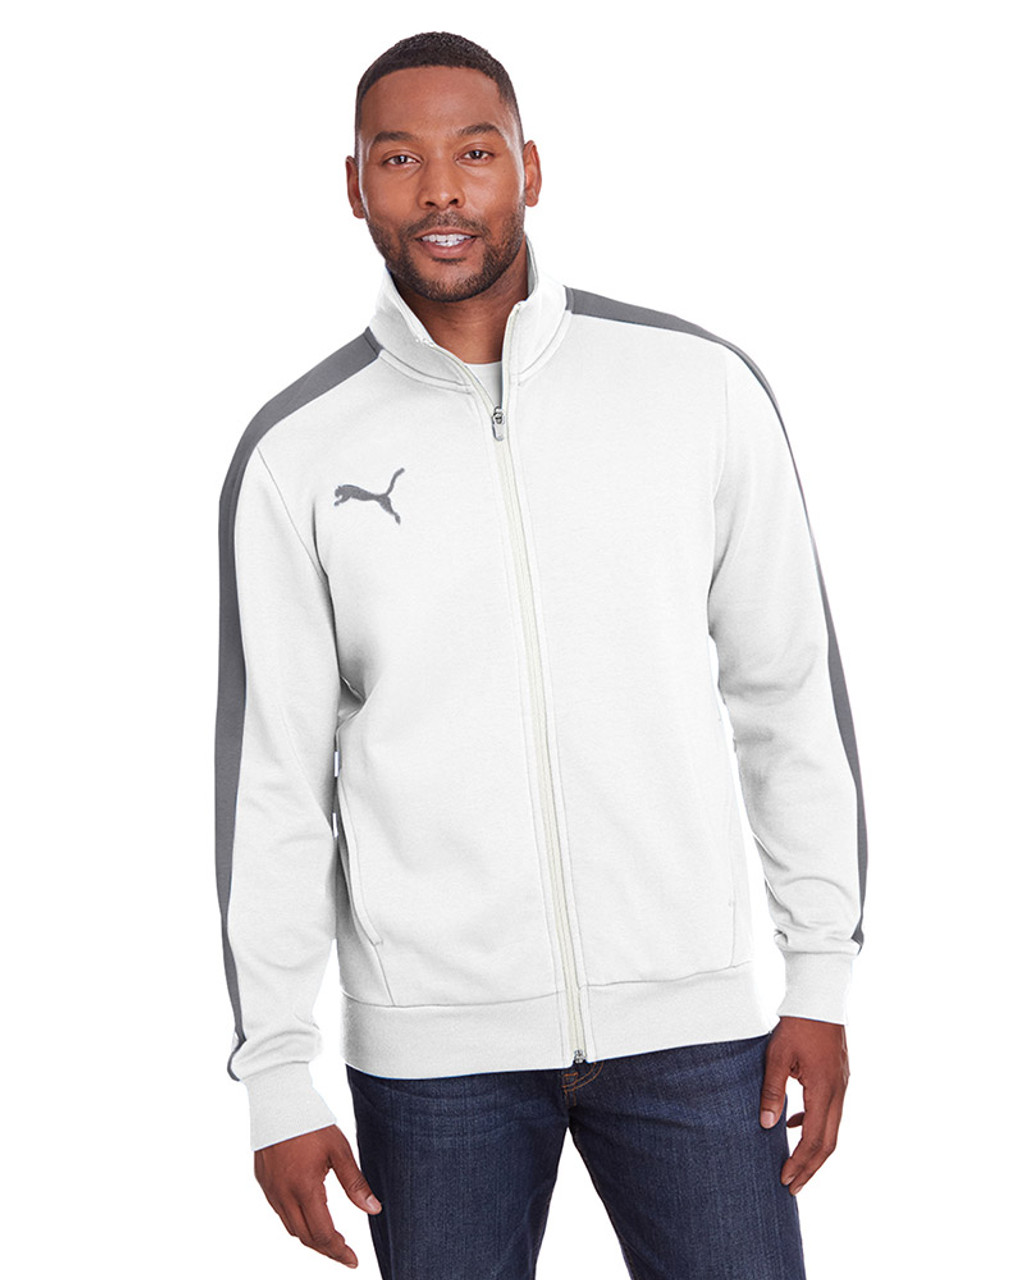 Bright White/Quiet Shade - 597021 Puma Sport Adult P48 Fleece Track Jacket | Blankclothing.ca